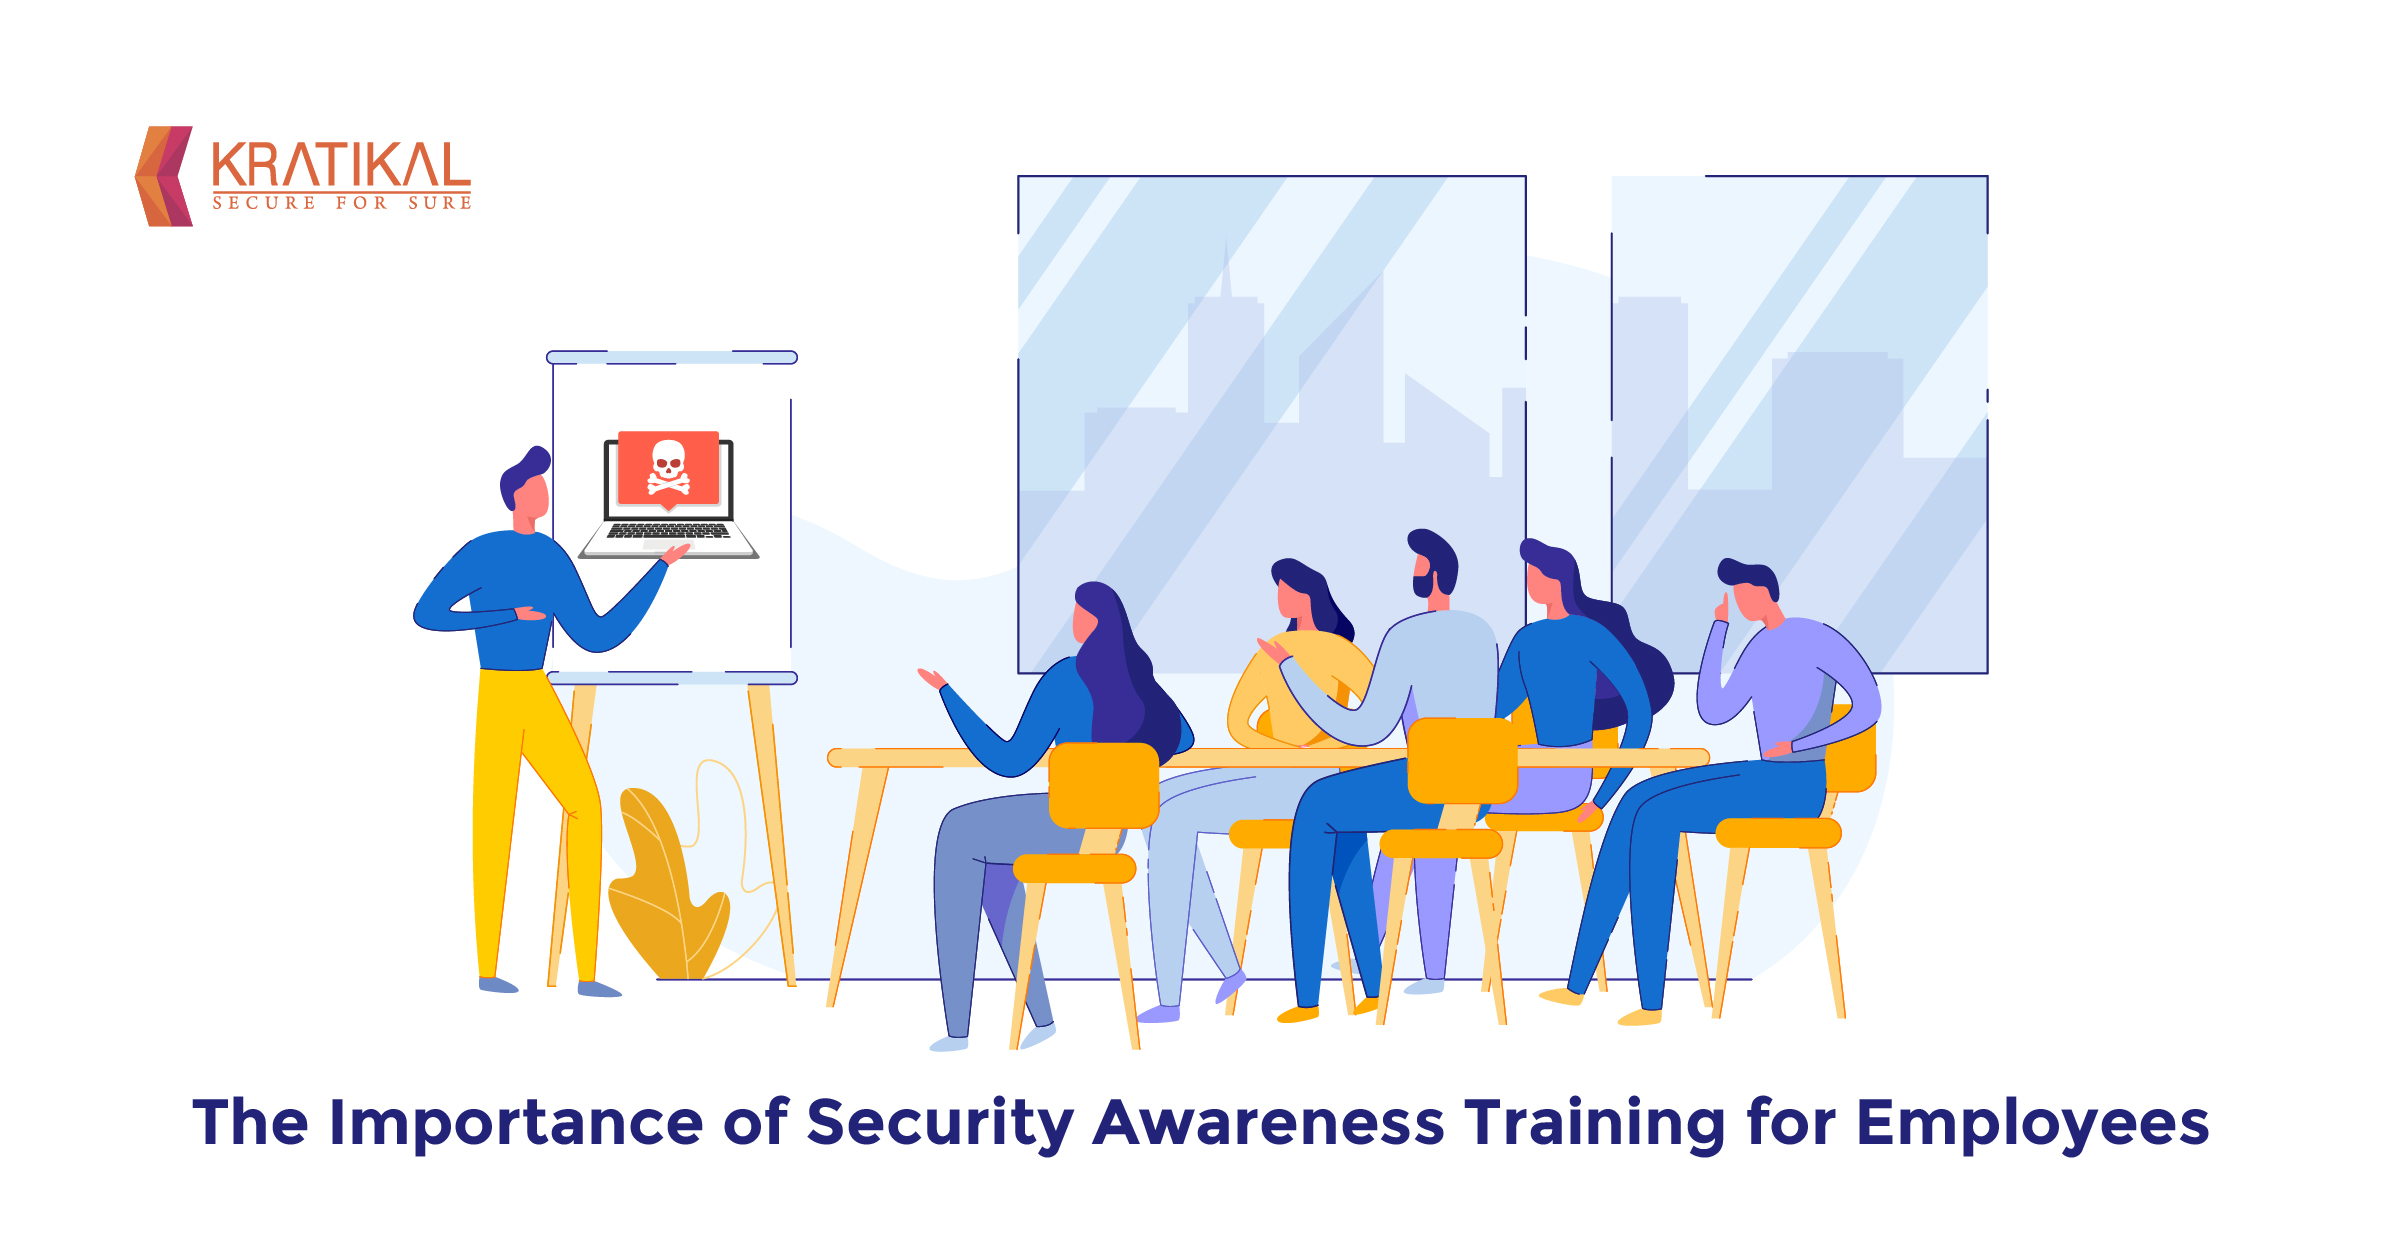 The Importance of Security Awareness Training for Employees